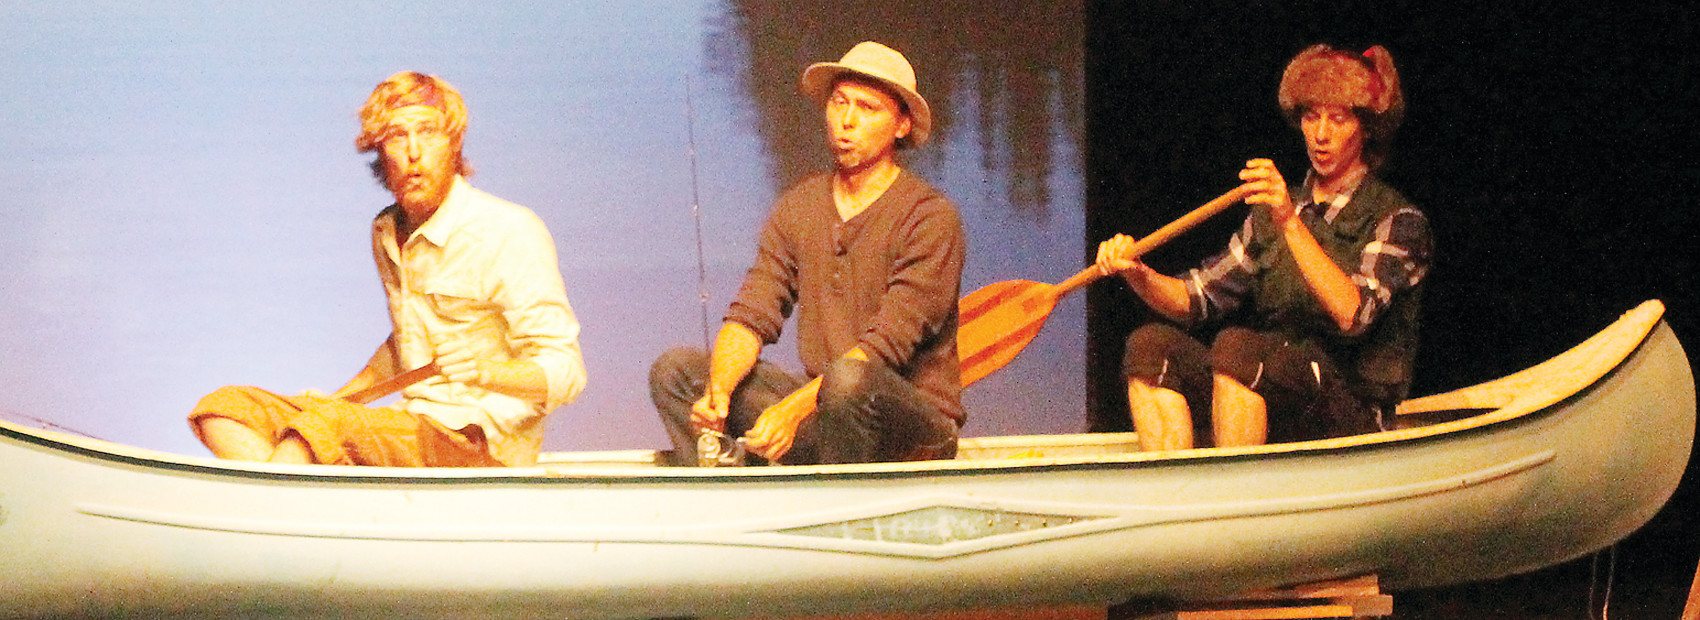 "Cast members sing ""The Walleye Song"" while paddling a canoe across the stage. Pictured are Ethan Shiffman, Luke Morgan, and Caleb 